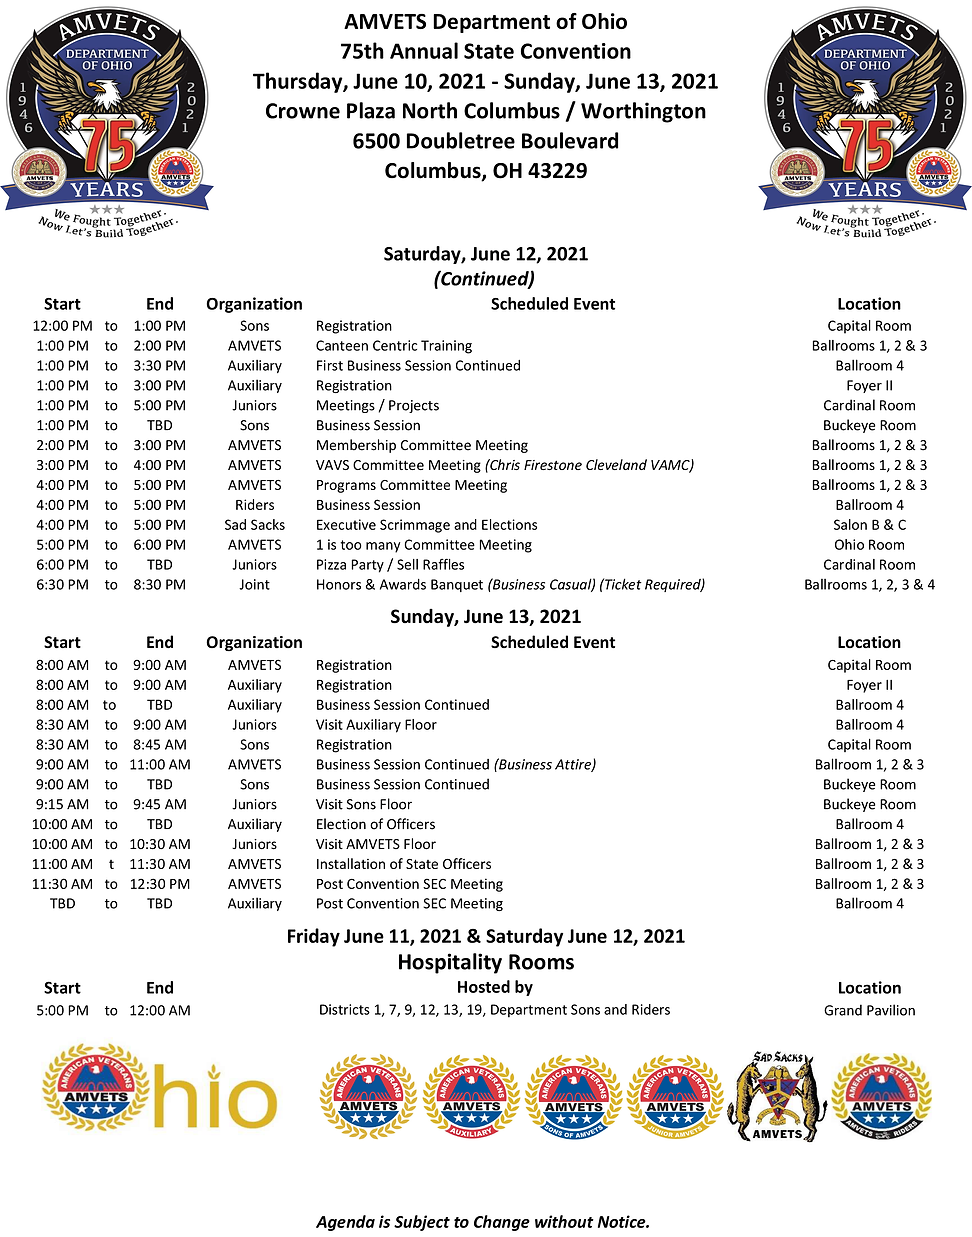 2021 State Convention Agenda (All)-2.png